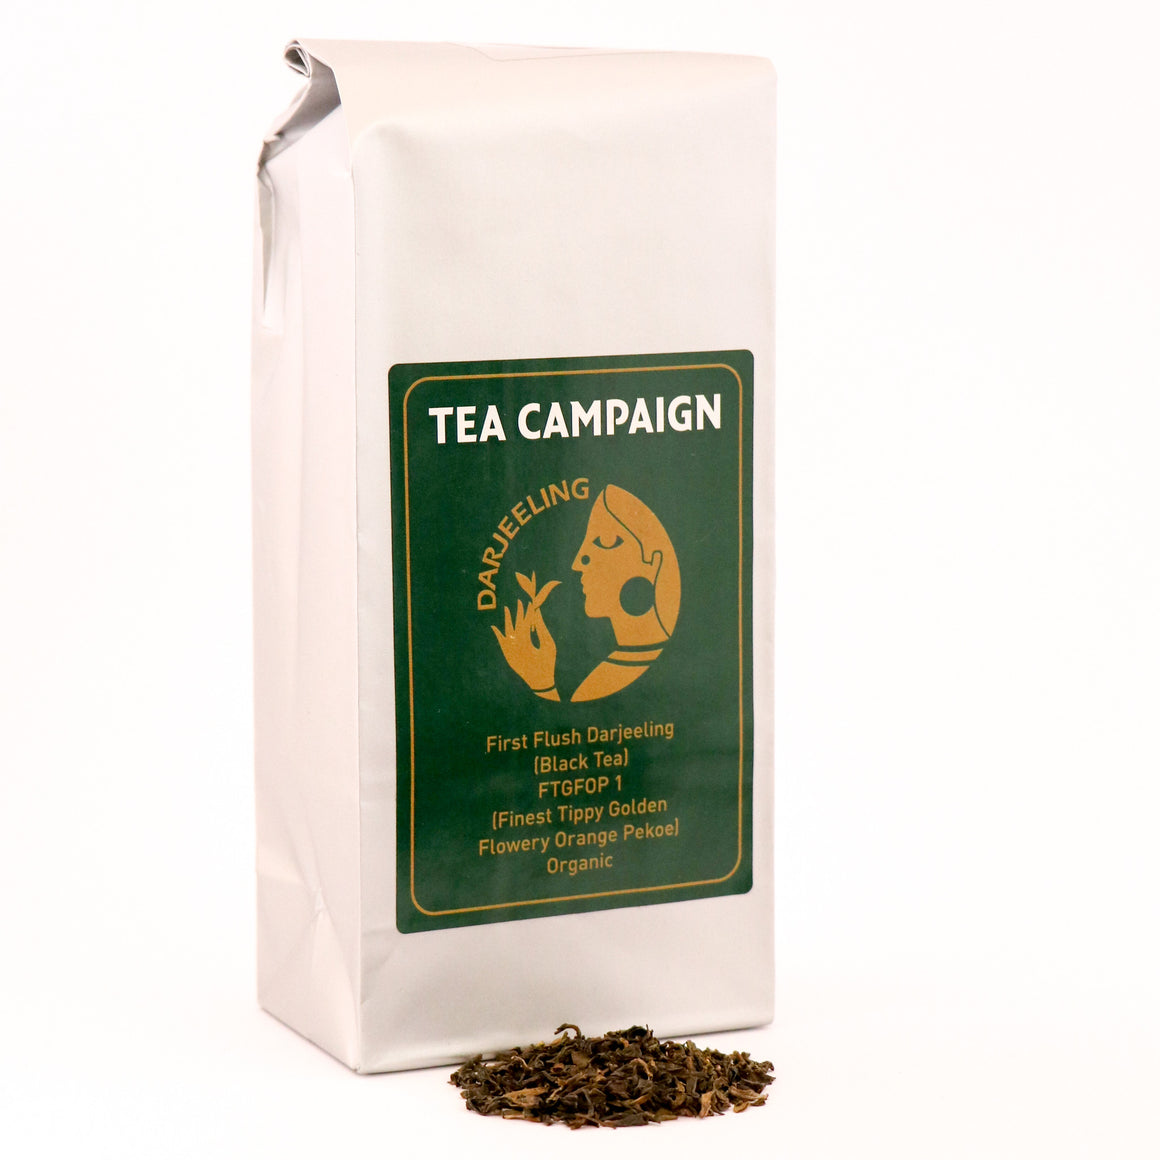 Tea Campaign Australia - Pure Darjeeling Tea - Black Tea First Flush